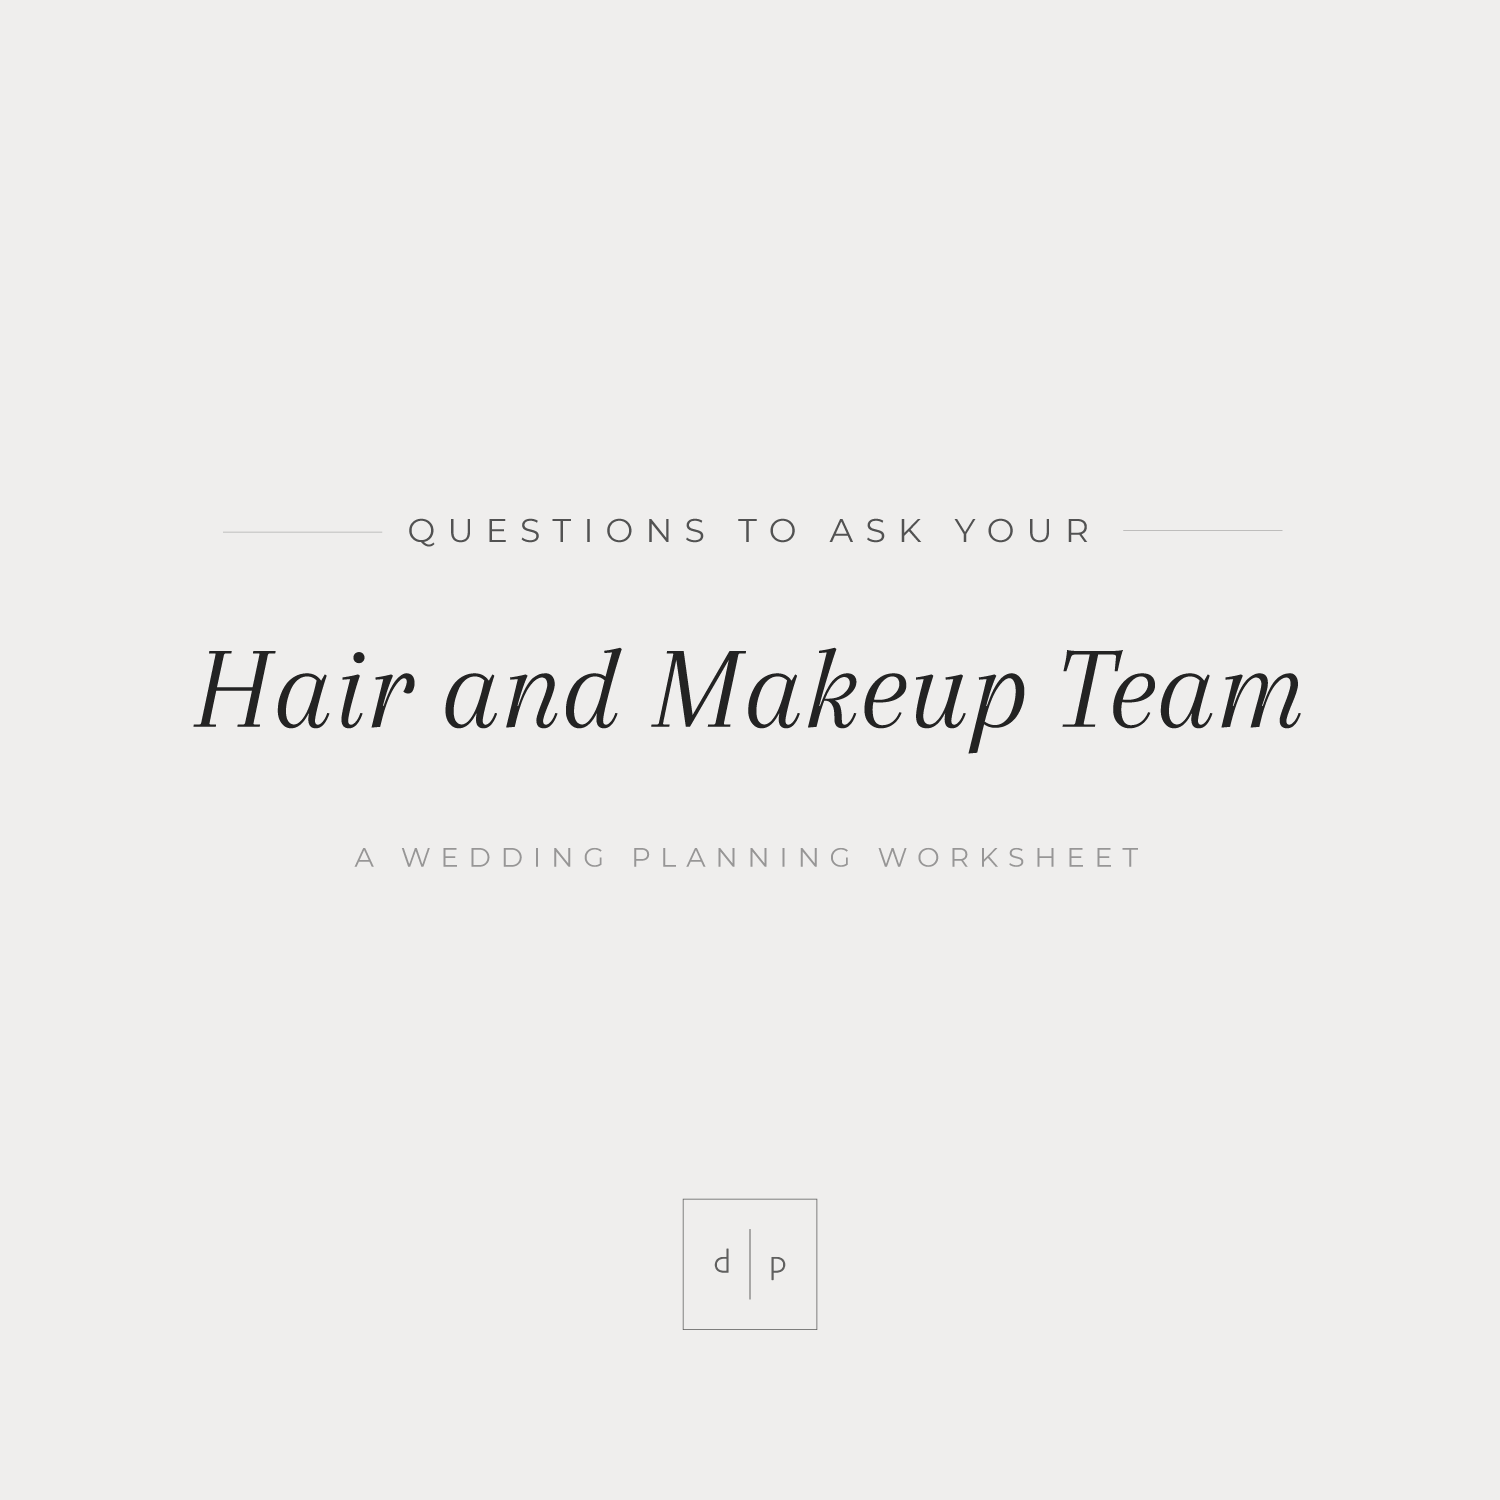 Worksheet: Questions to Ask Your Hair and Makeup Team